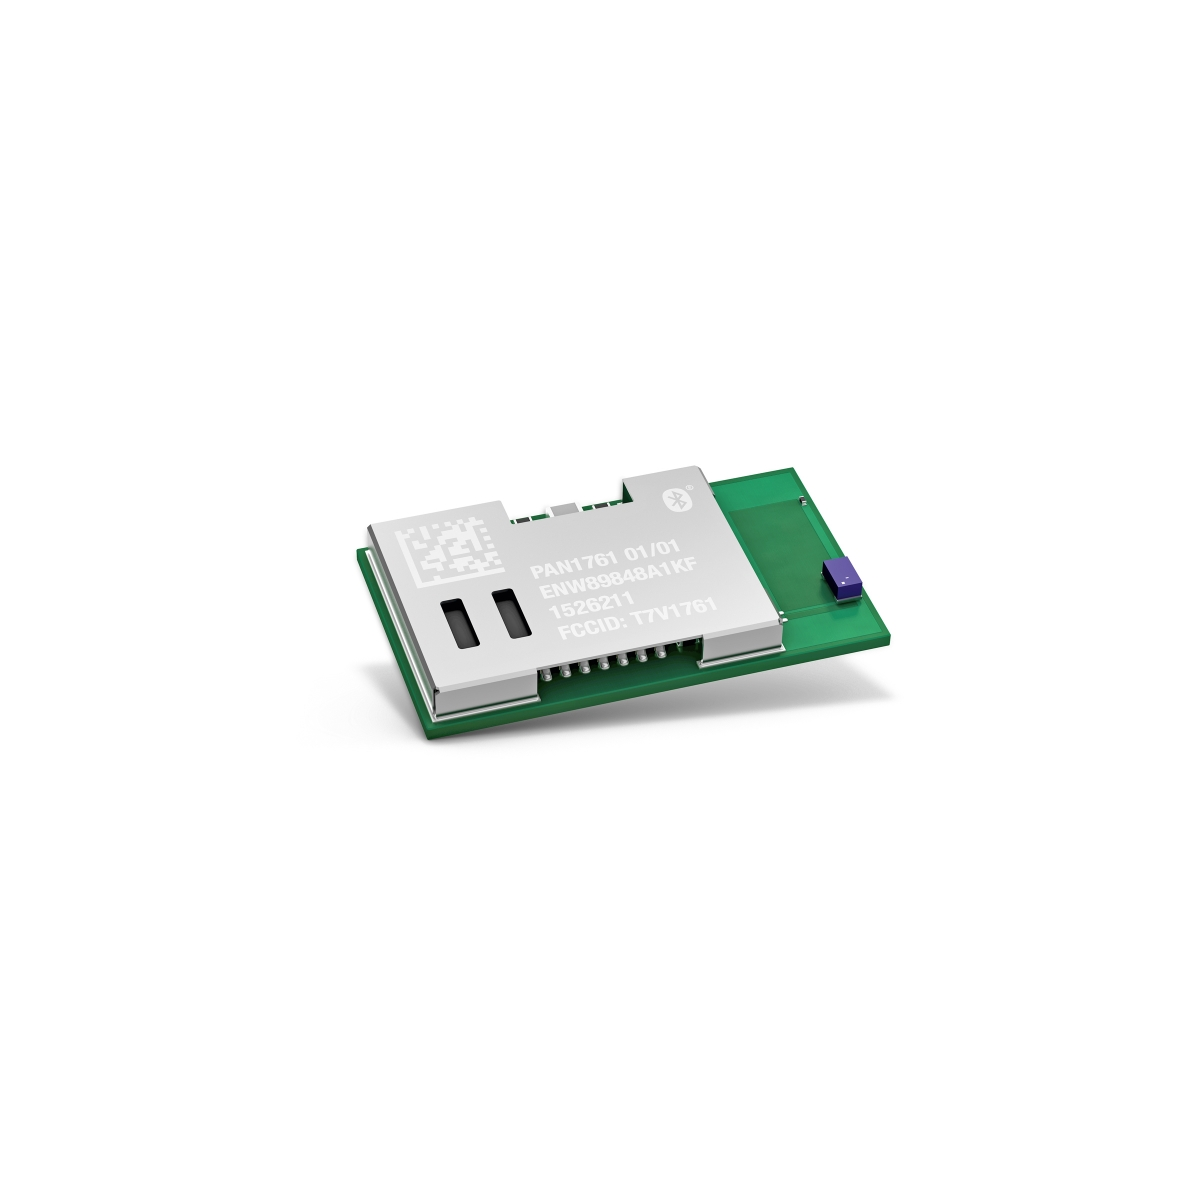 NFC PAN1761 Series from Panasonic for low power Bluetooth applications